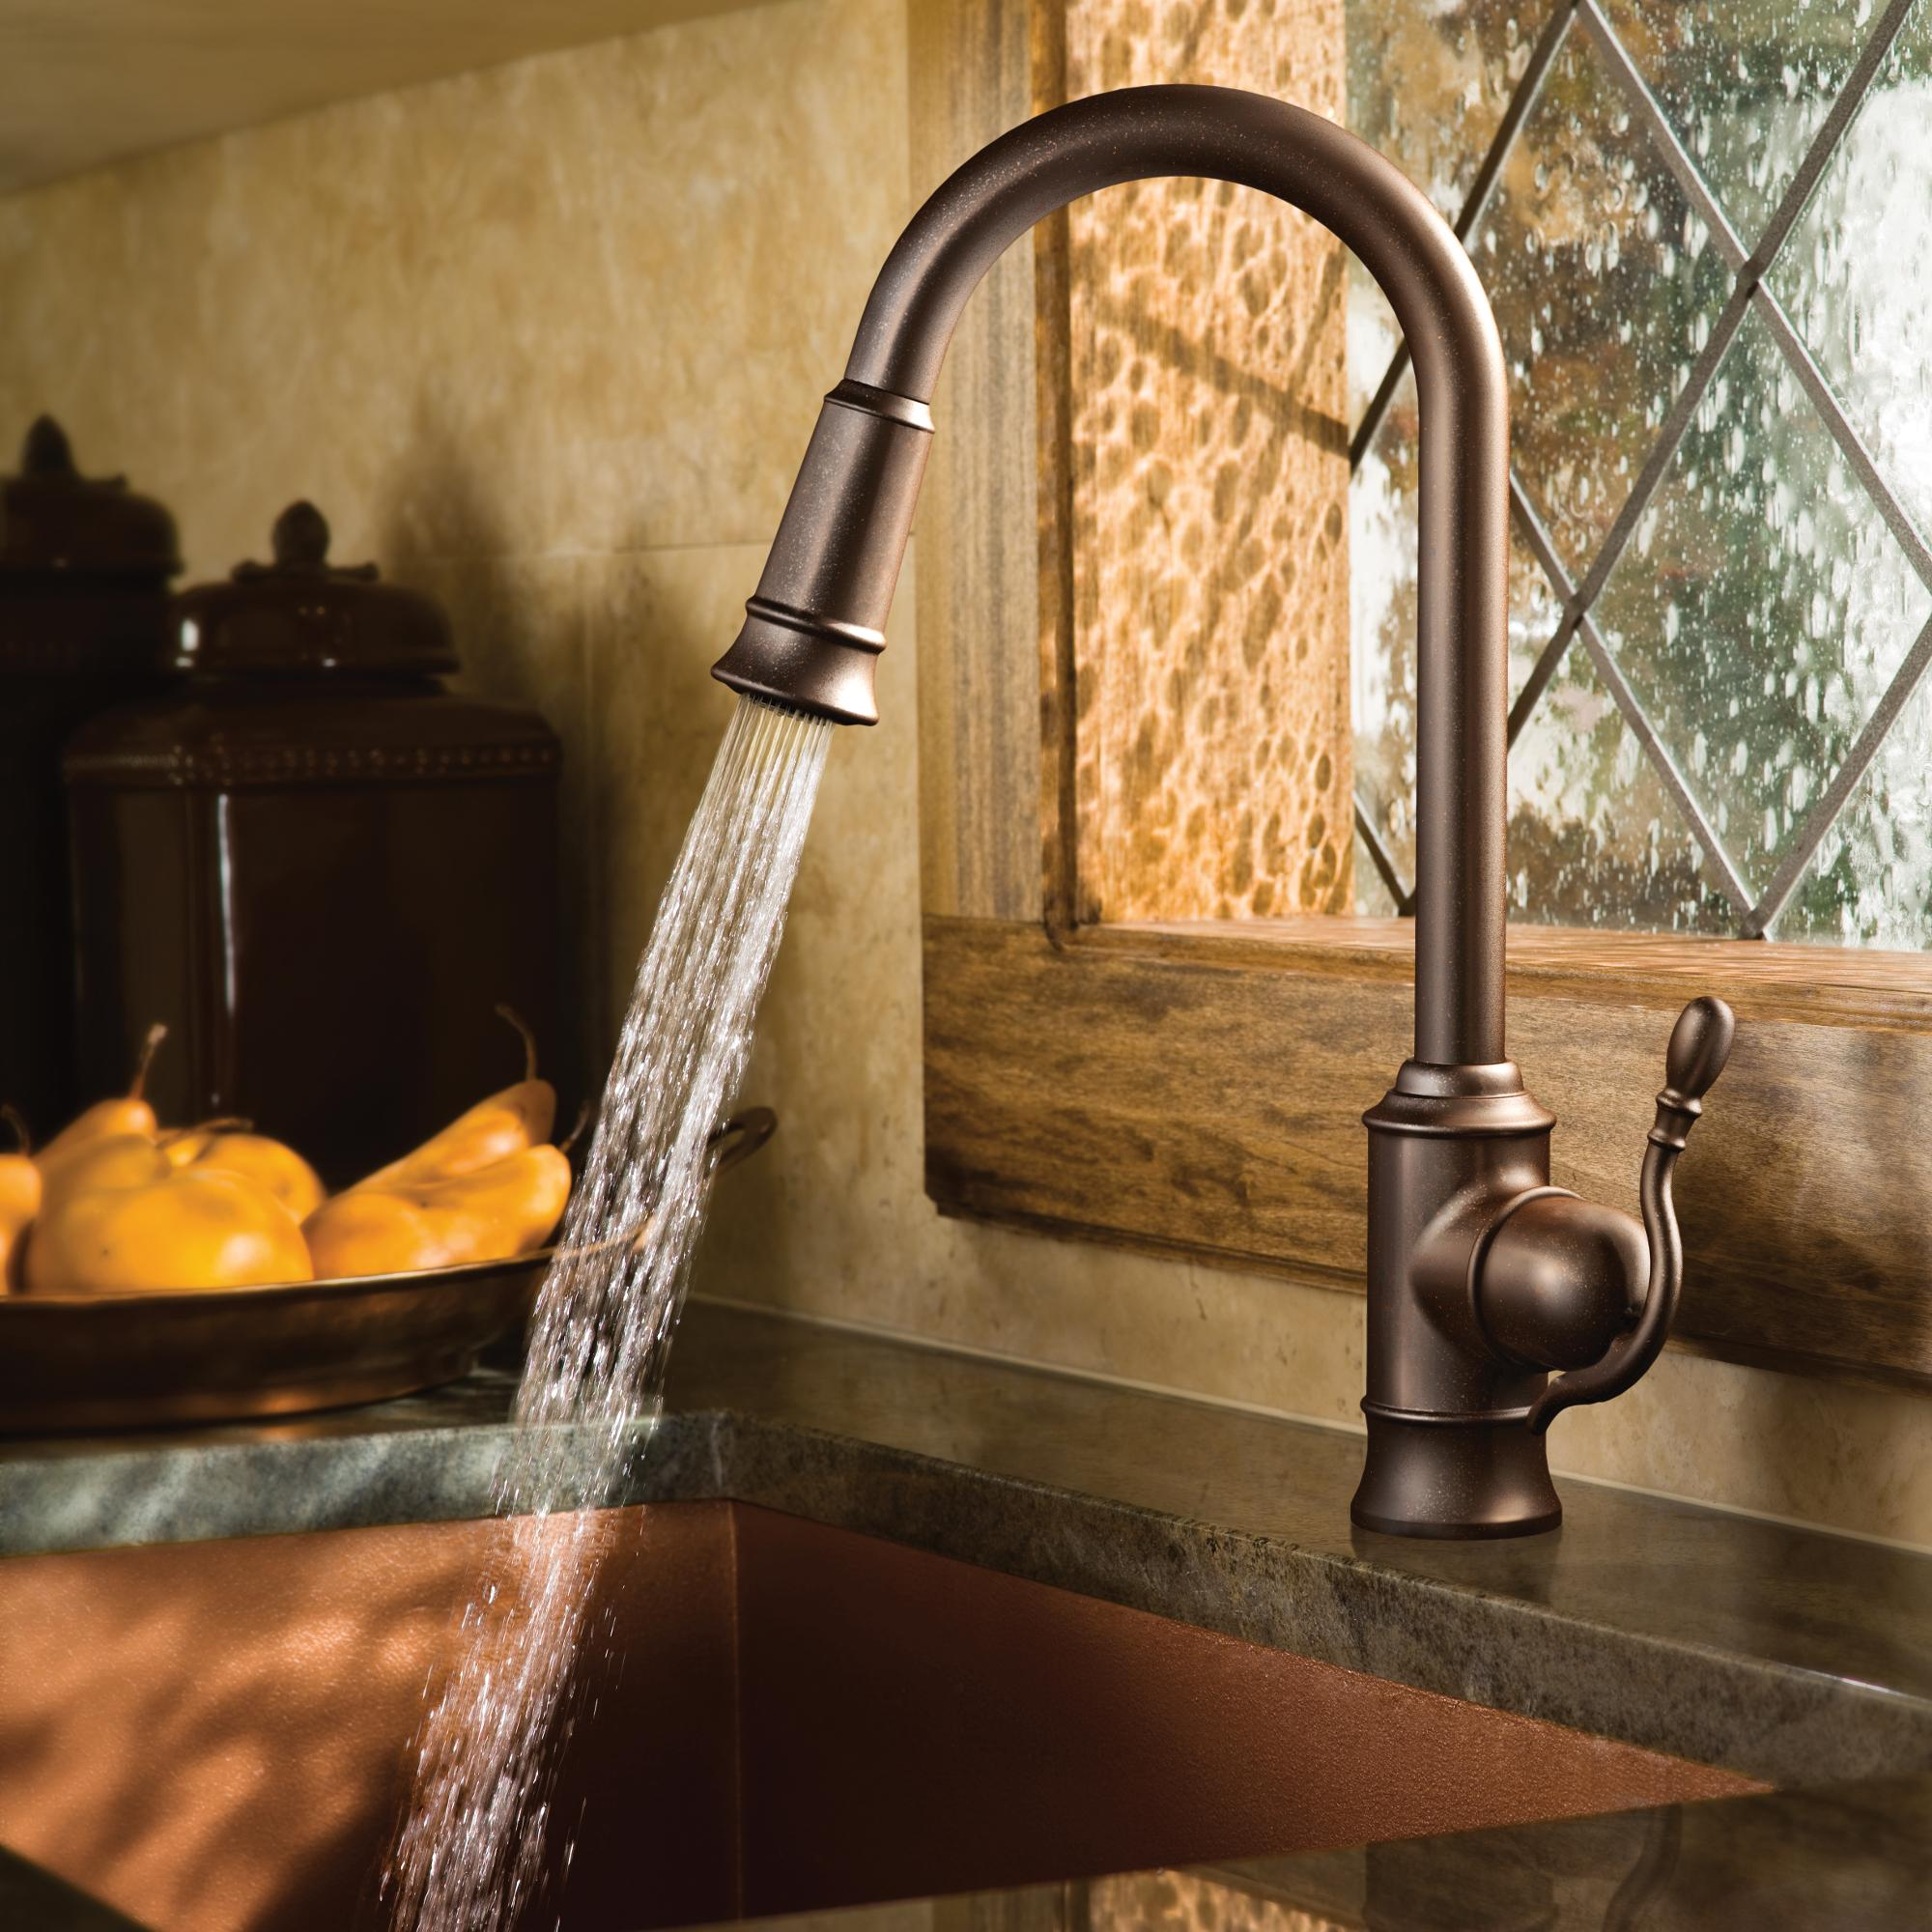 Moen kitchen faucet high flow rate - View Larger